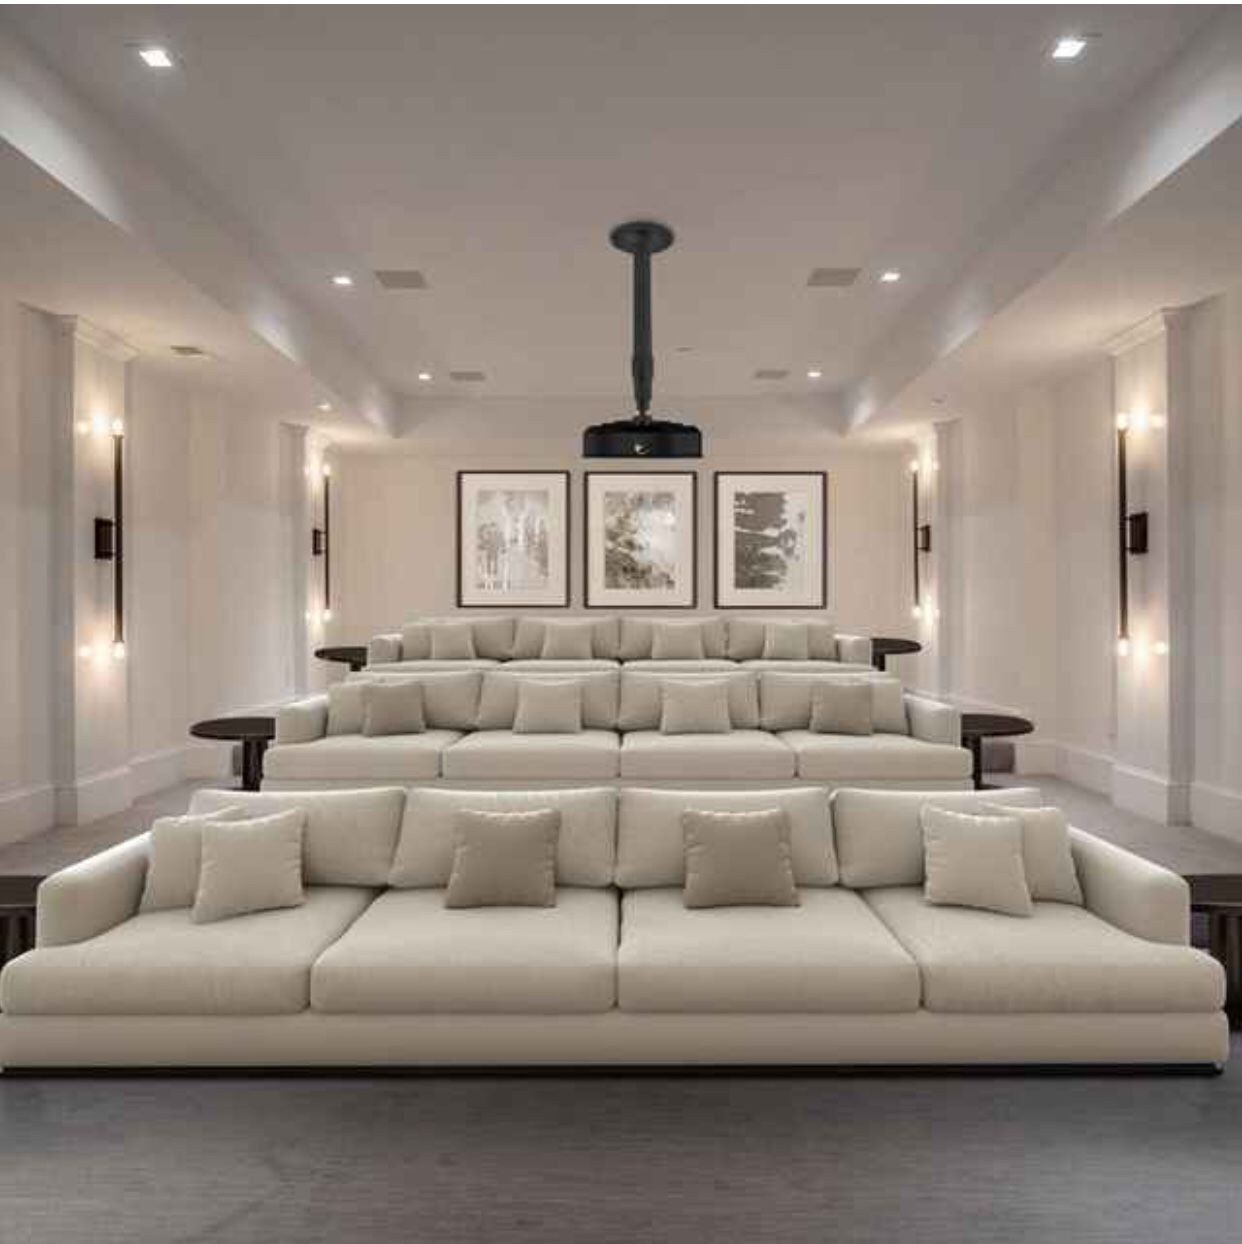 Olsberg 3 Piece Sectional Steel Furniture Sectional Sofa 3